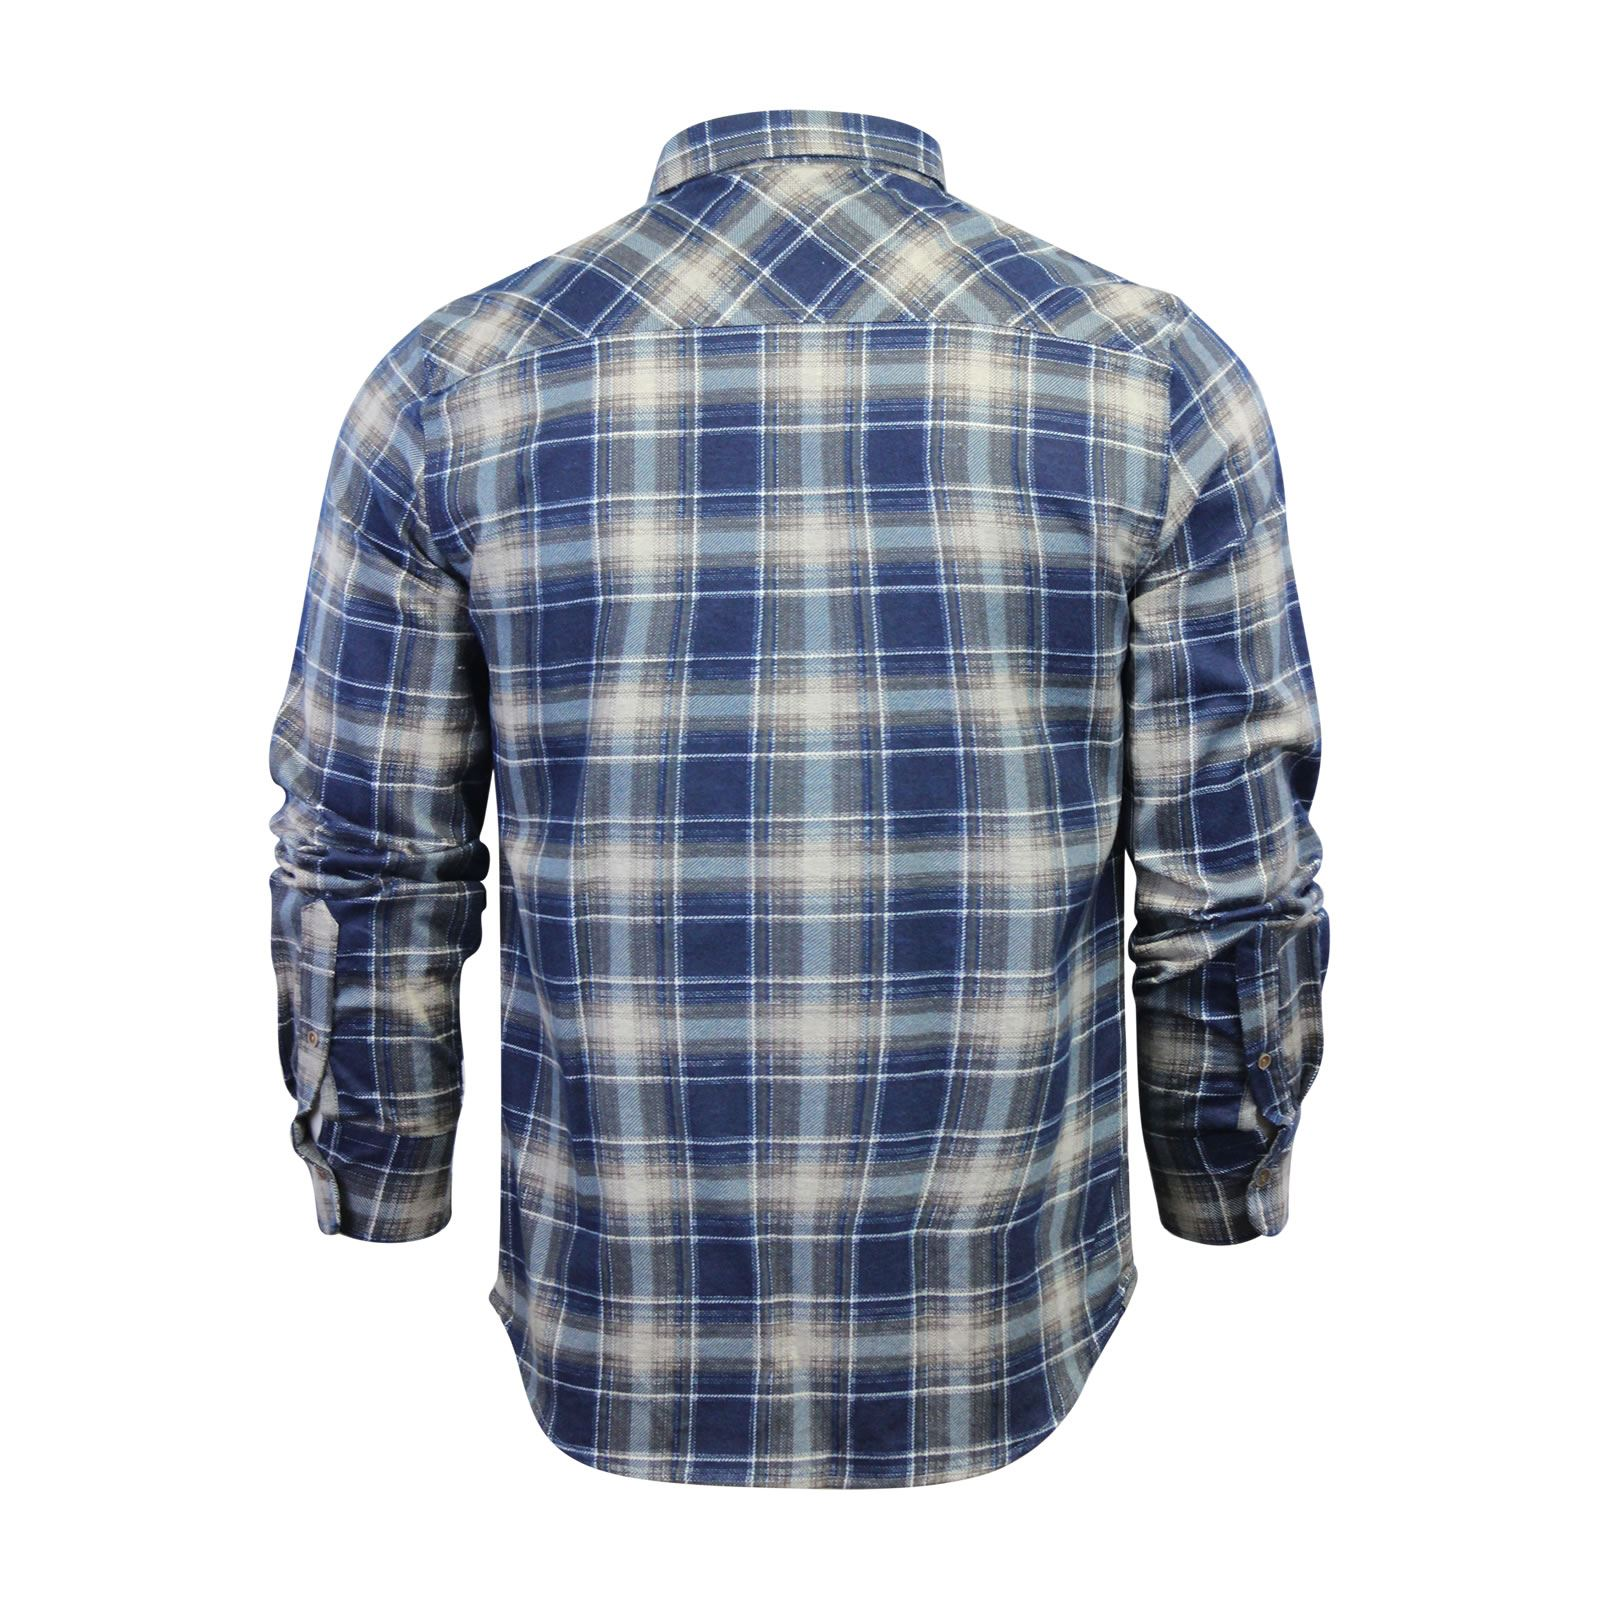 Mens-Check-Shirt-Brave-Soul-Flannel-Brushed-Cotton-Long-Sleeve-Casual-Top thumbnail 97